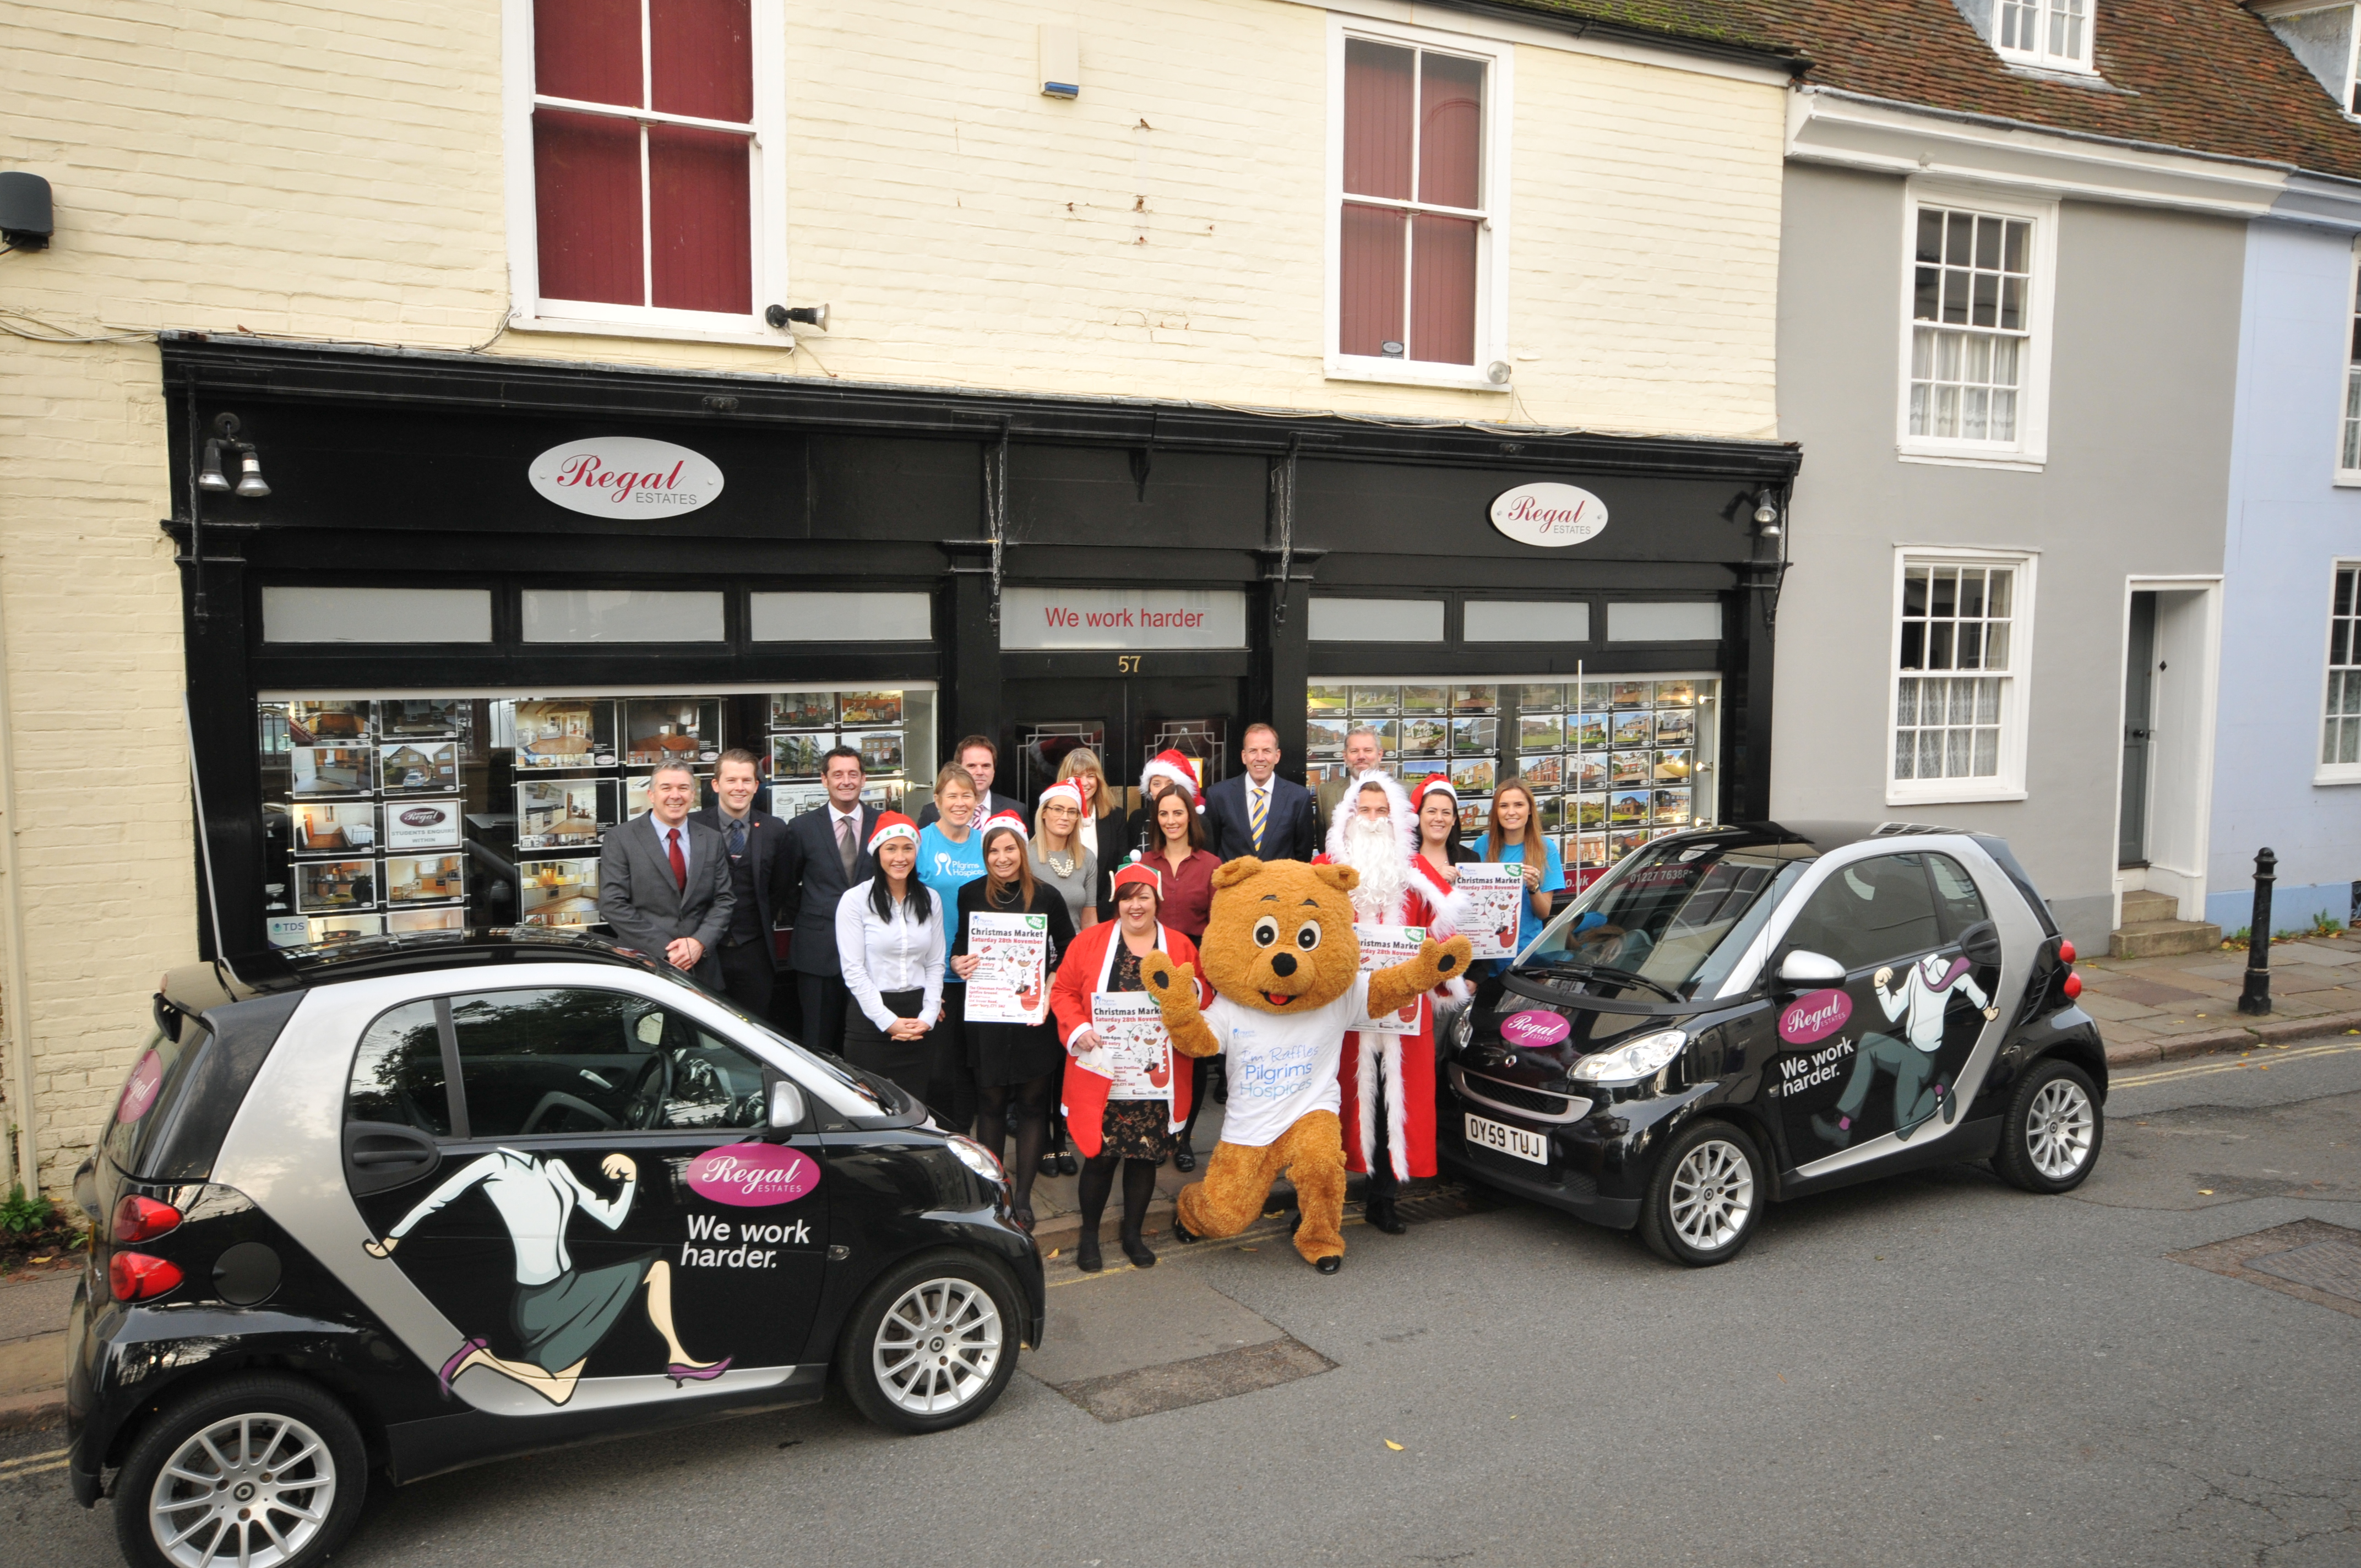 Regal Estates are main sponsors of the Pilgrims Hospice Canterbury Christmas Market for the second year running….